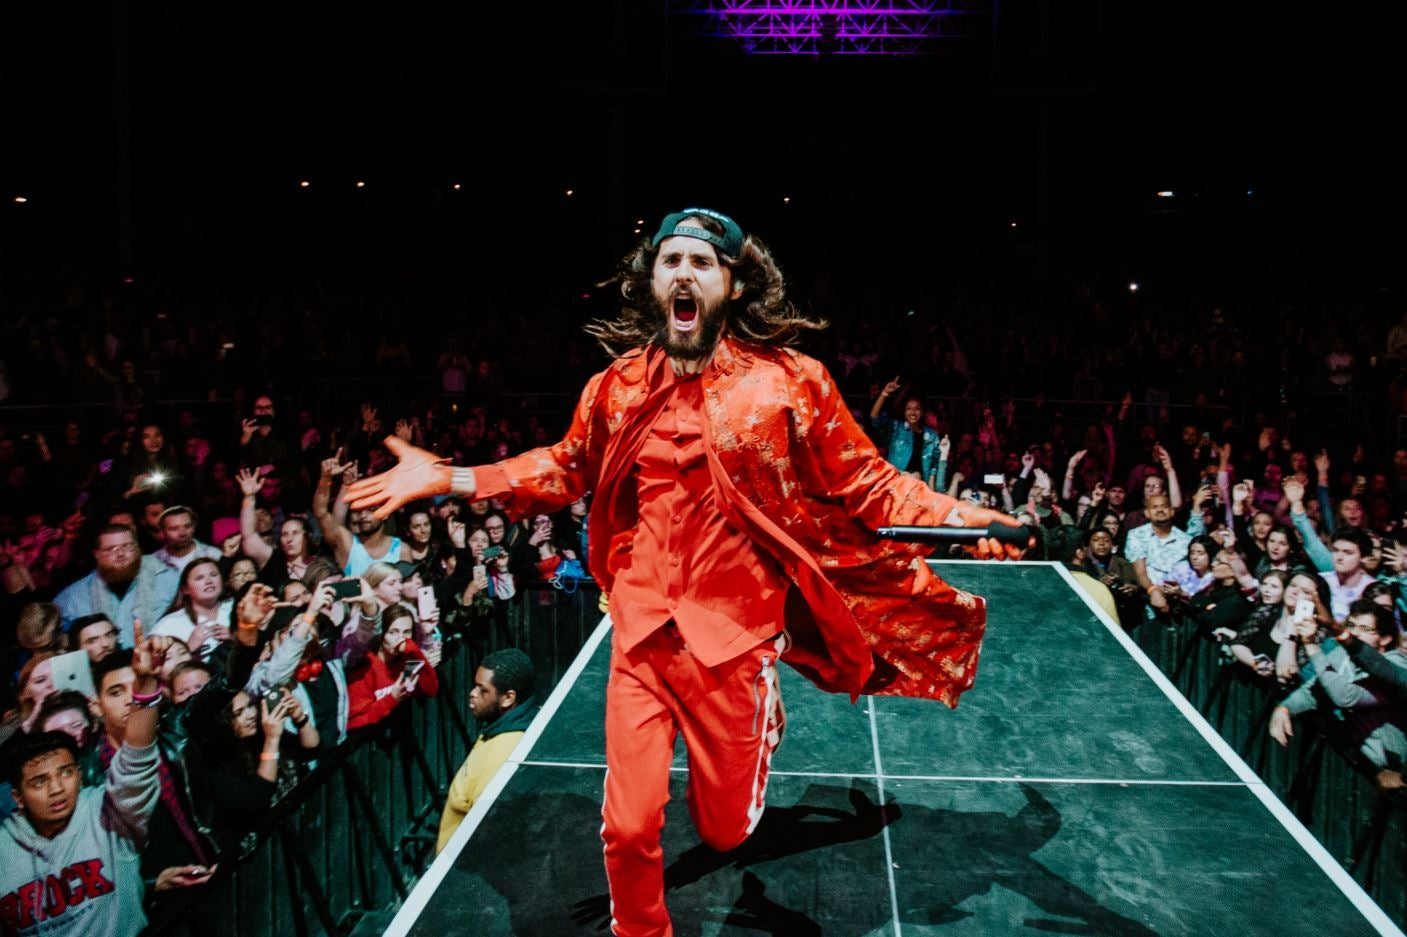 """THIRTY SECONDS TO MARS RELEASES NEW VIDEO """"HAIL TO THE VICTOR"""" IN TRIBUTE TO THE LIVE MUSIC INDUSTRY AND LAUNCHES T-SHIRT RAISING MONEY FOR CREW NATION"""